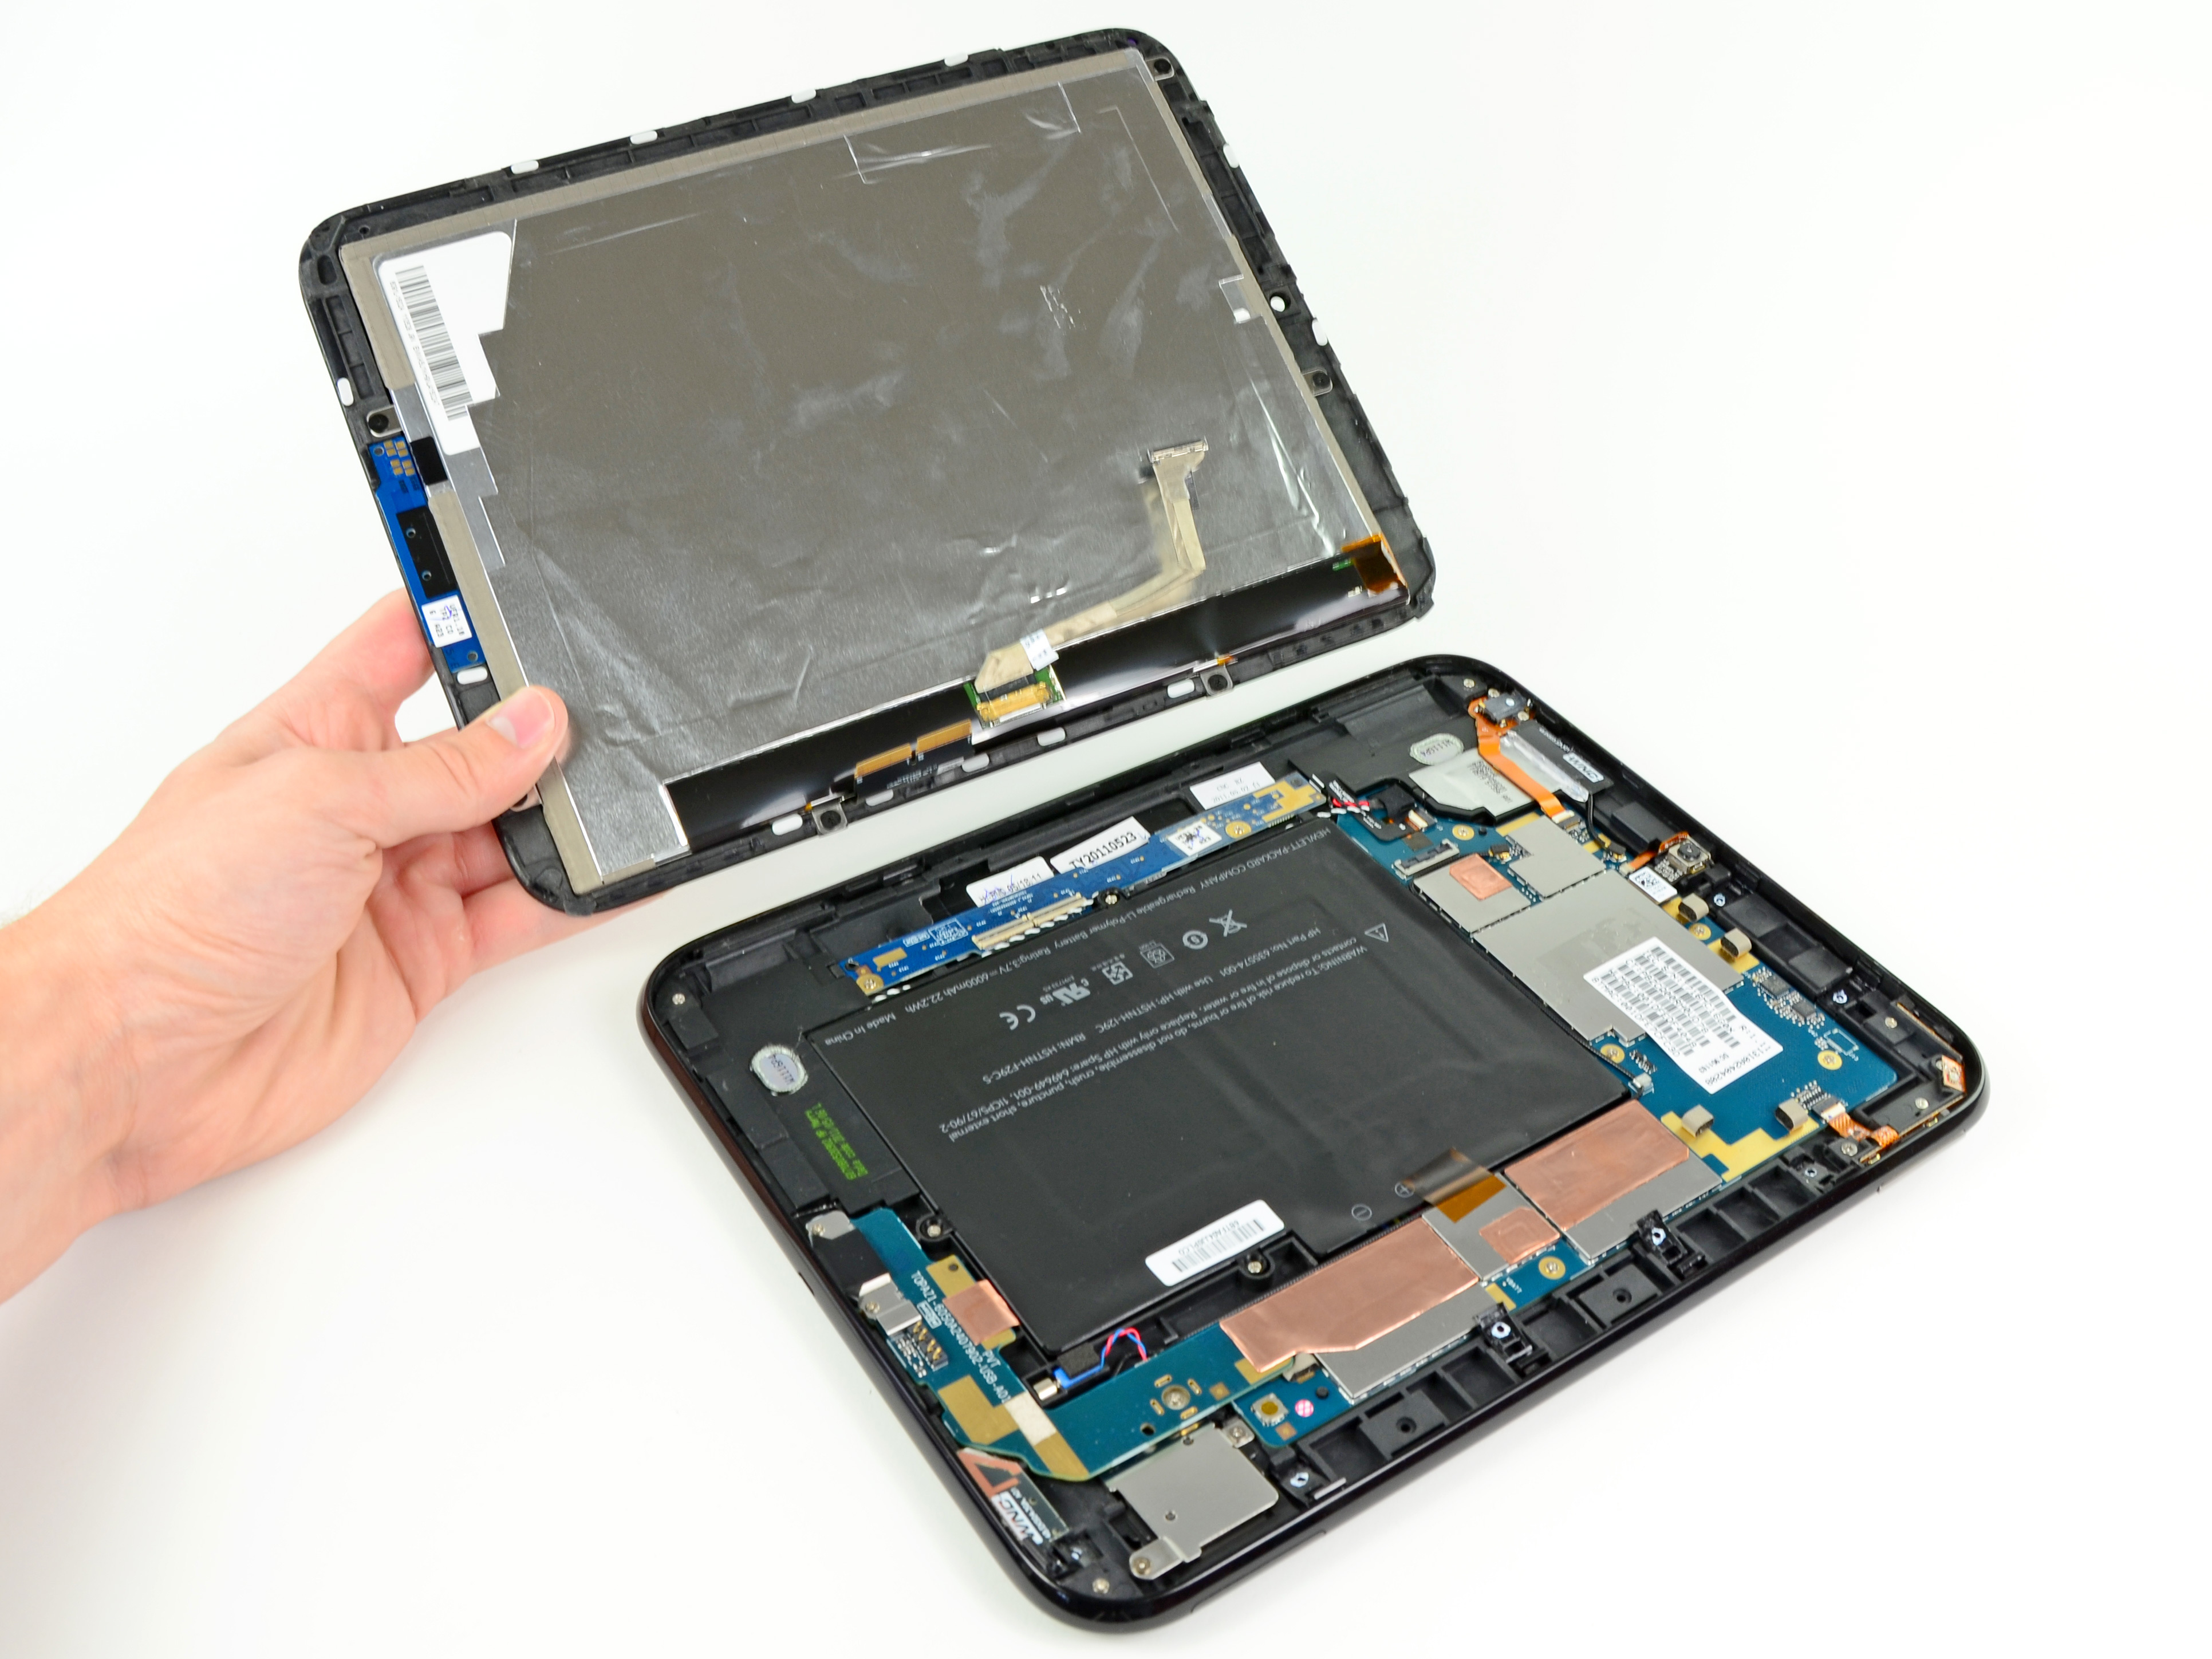 Hp Touchpad Battery Replacement Ifixit